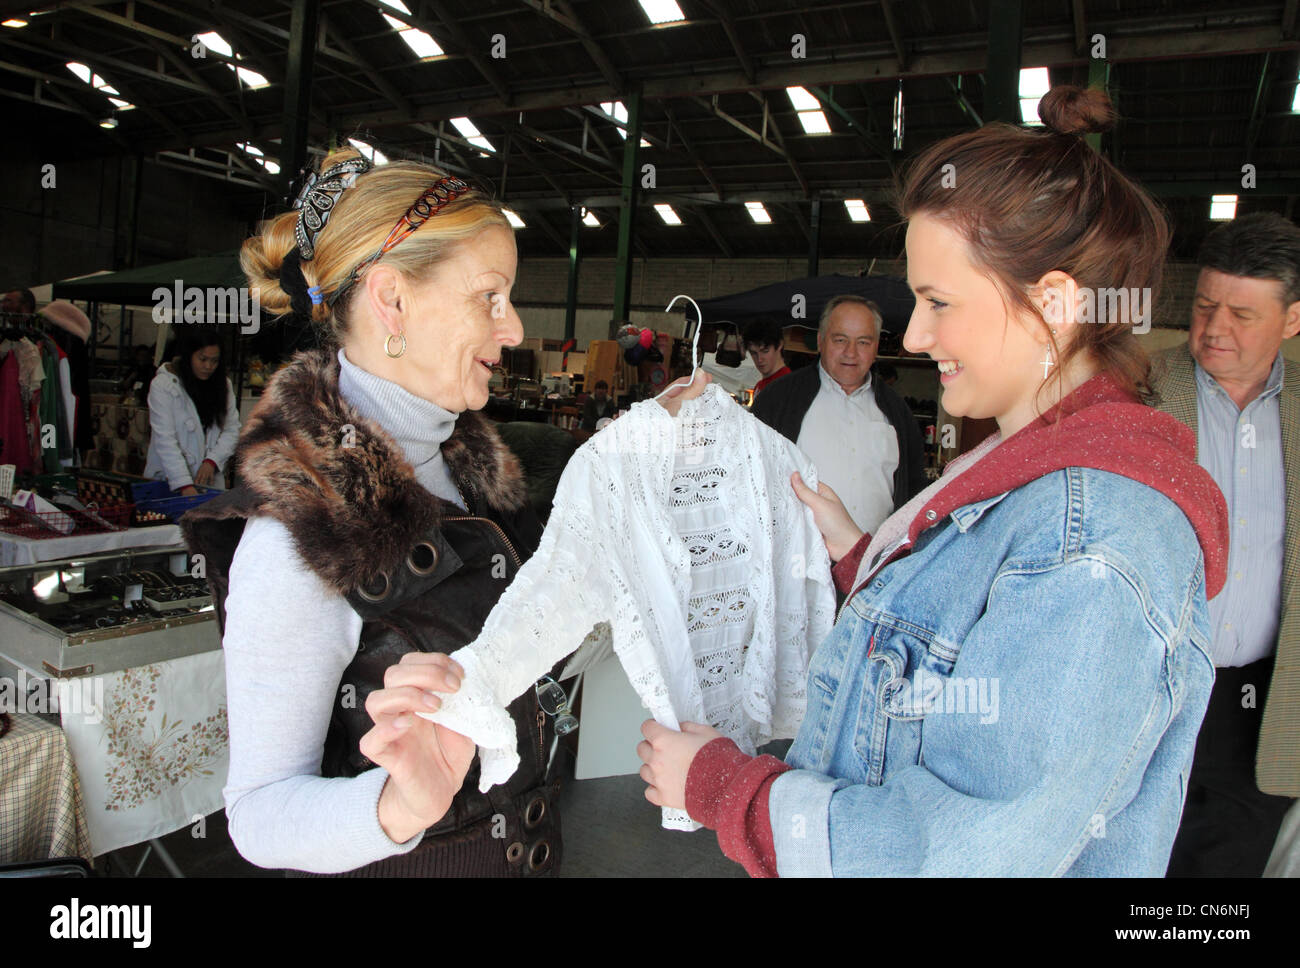 Jeanette makes a sale at the Merchants Yard Car Boot Sale, Dublin, Ireland - Stock Image